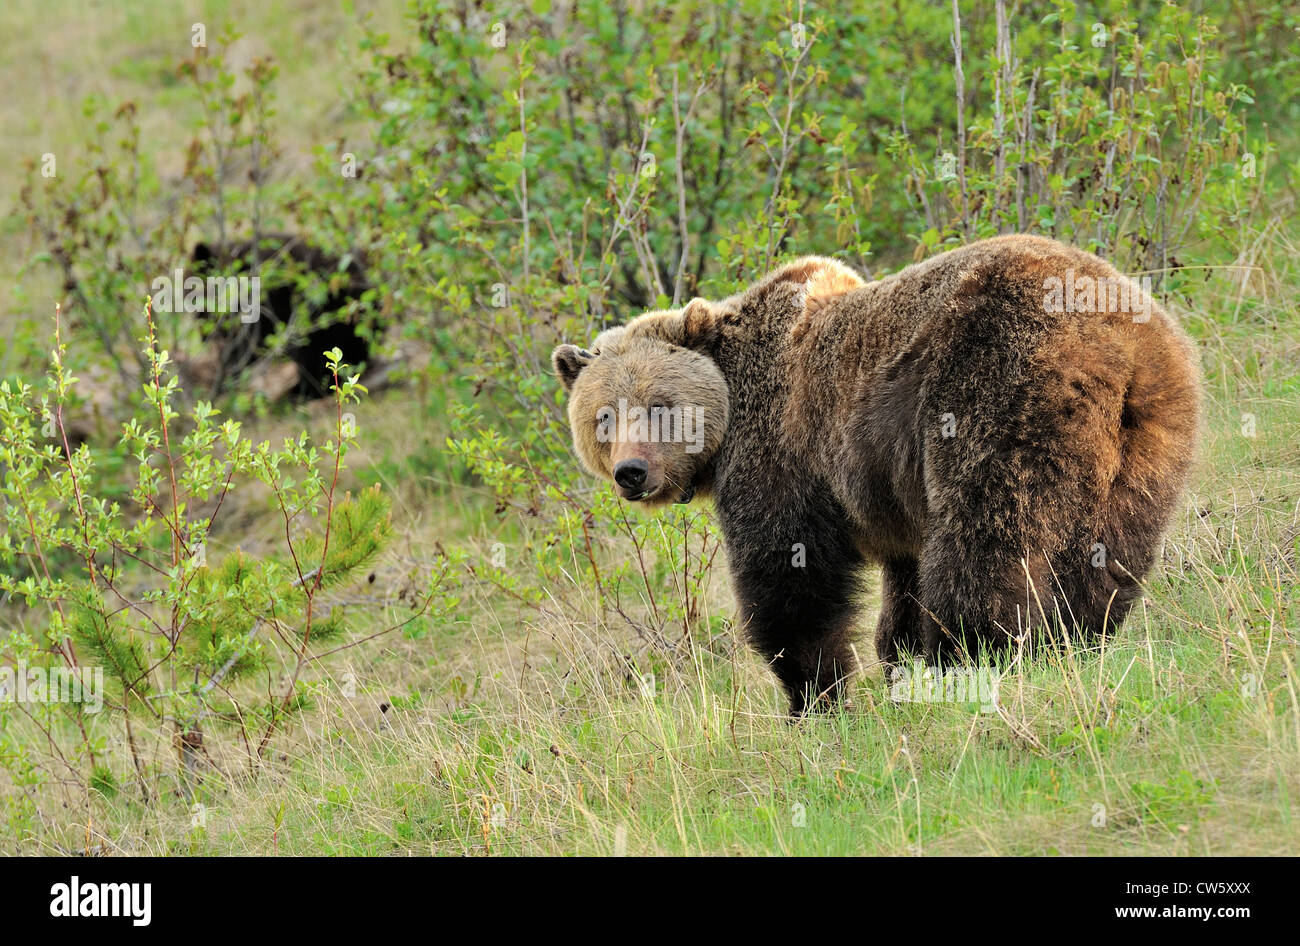 An adult mother grizzly bear looking back as she crosses a mountain meadow in springtime. - Stock Image